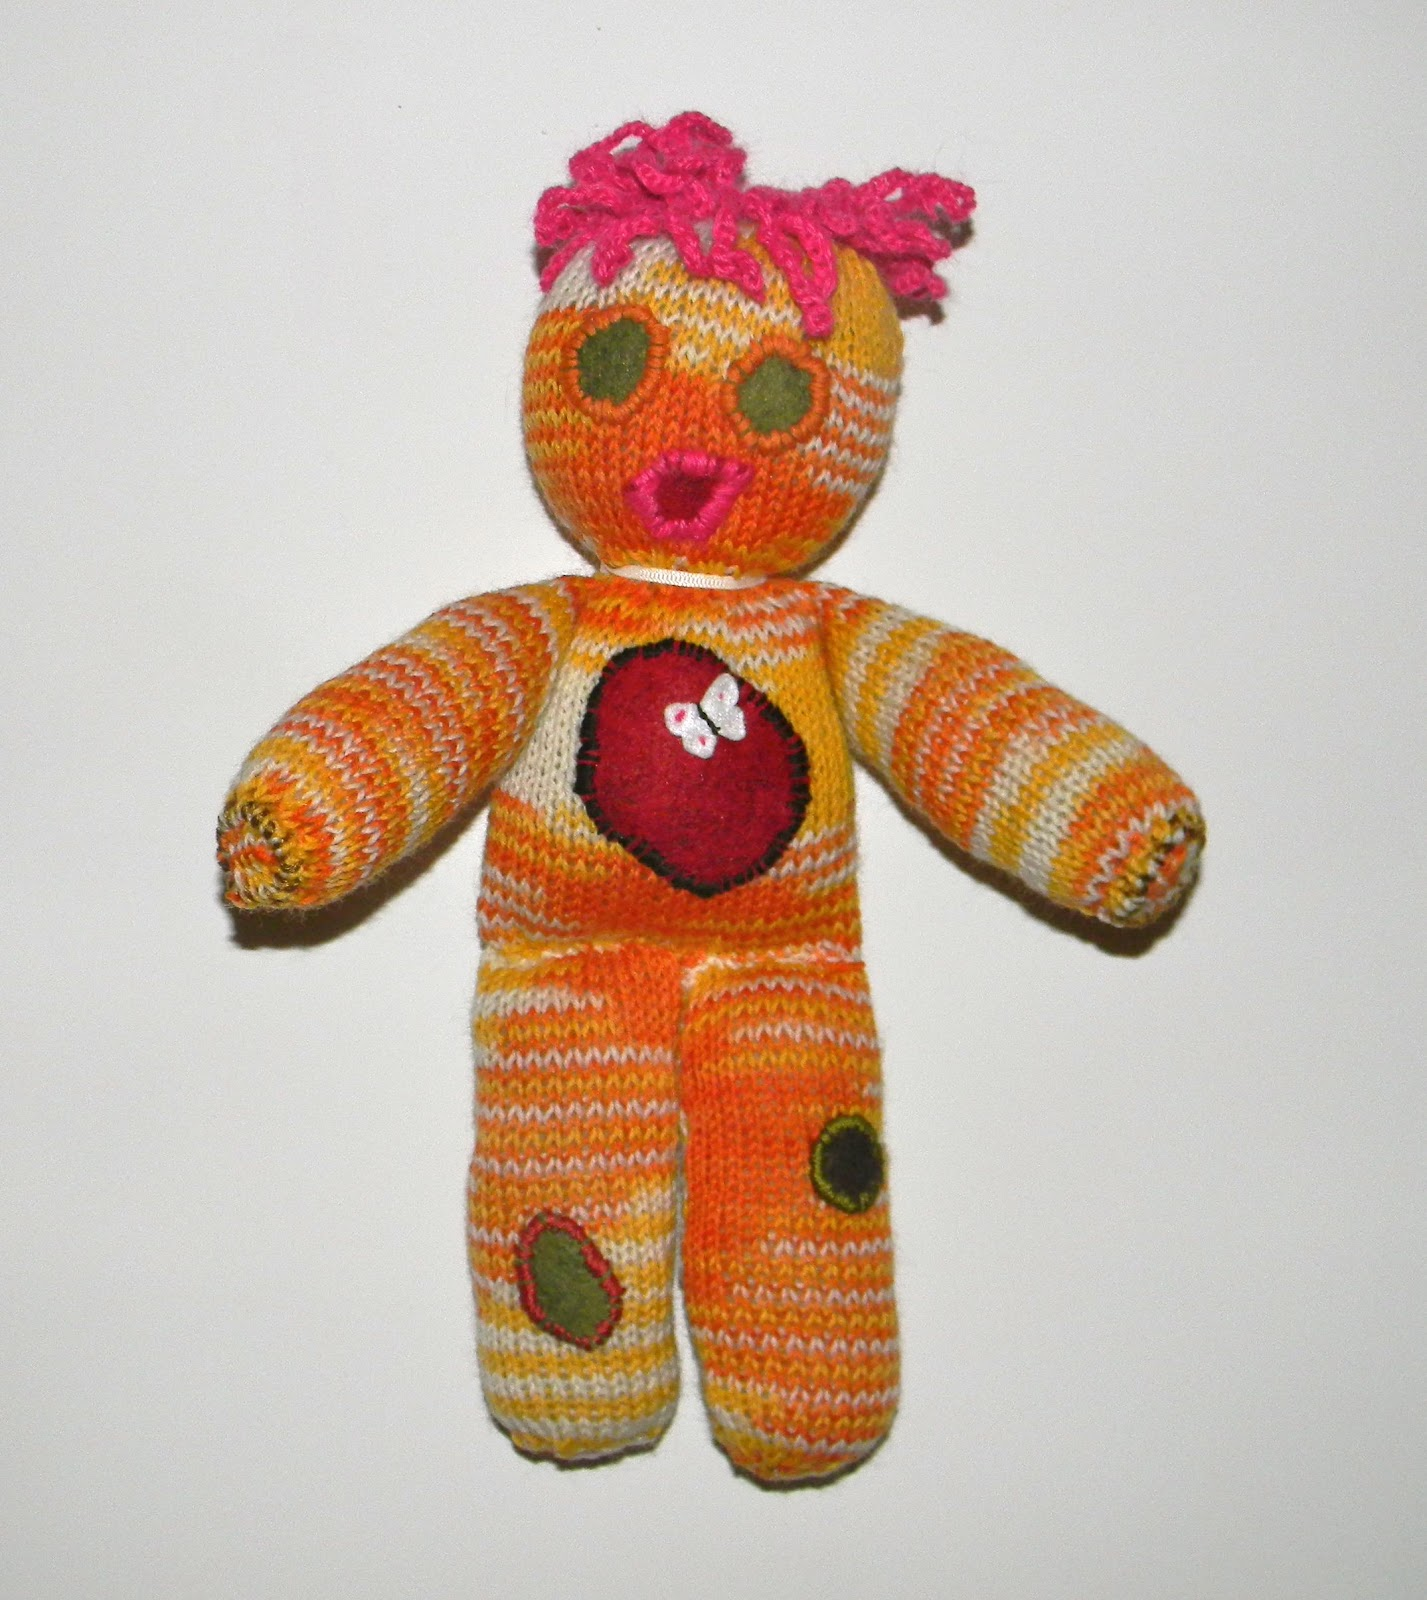 Knit Doll Pattern Easy : Louise Knits: Easy knitted doll